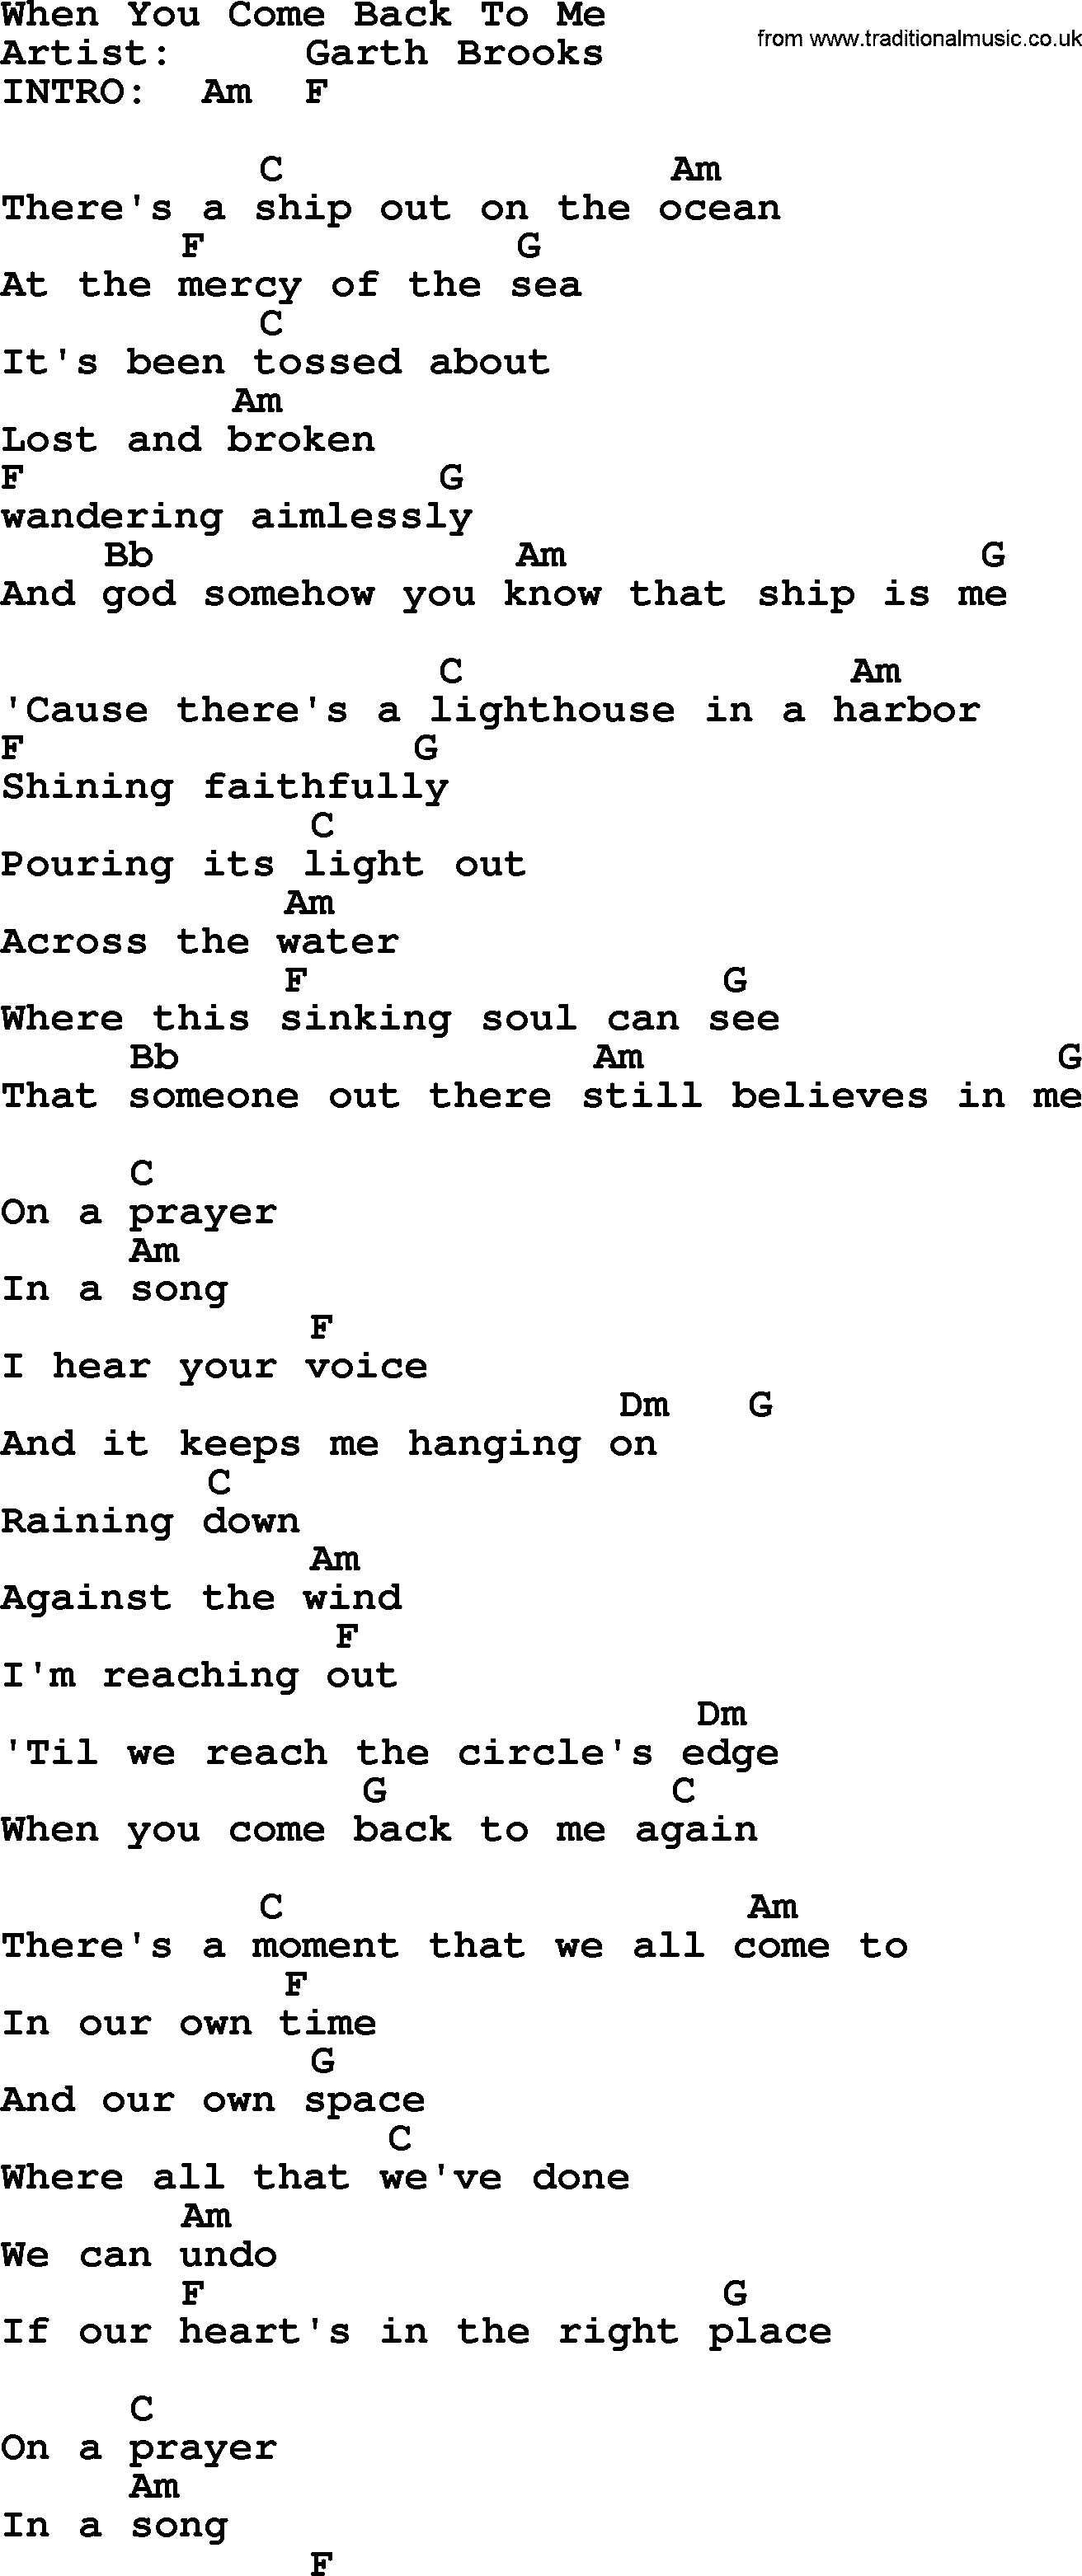 When You Come Back To Me By Garth Brooks Lyrics And Chords